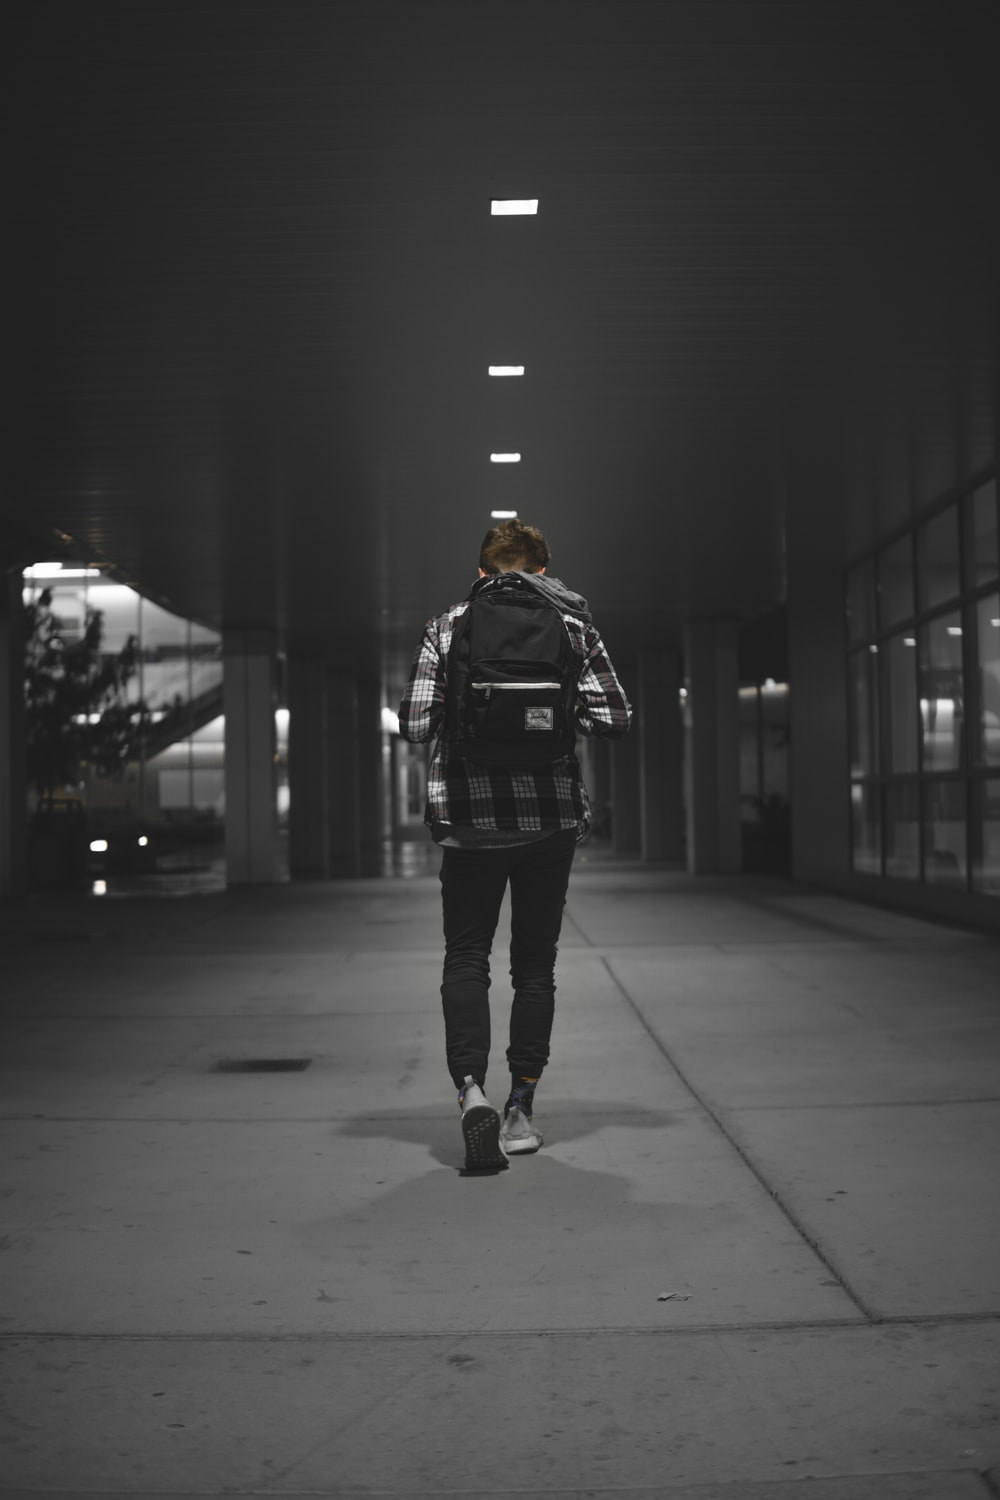 Man with backpack walking alone on pathway photo free